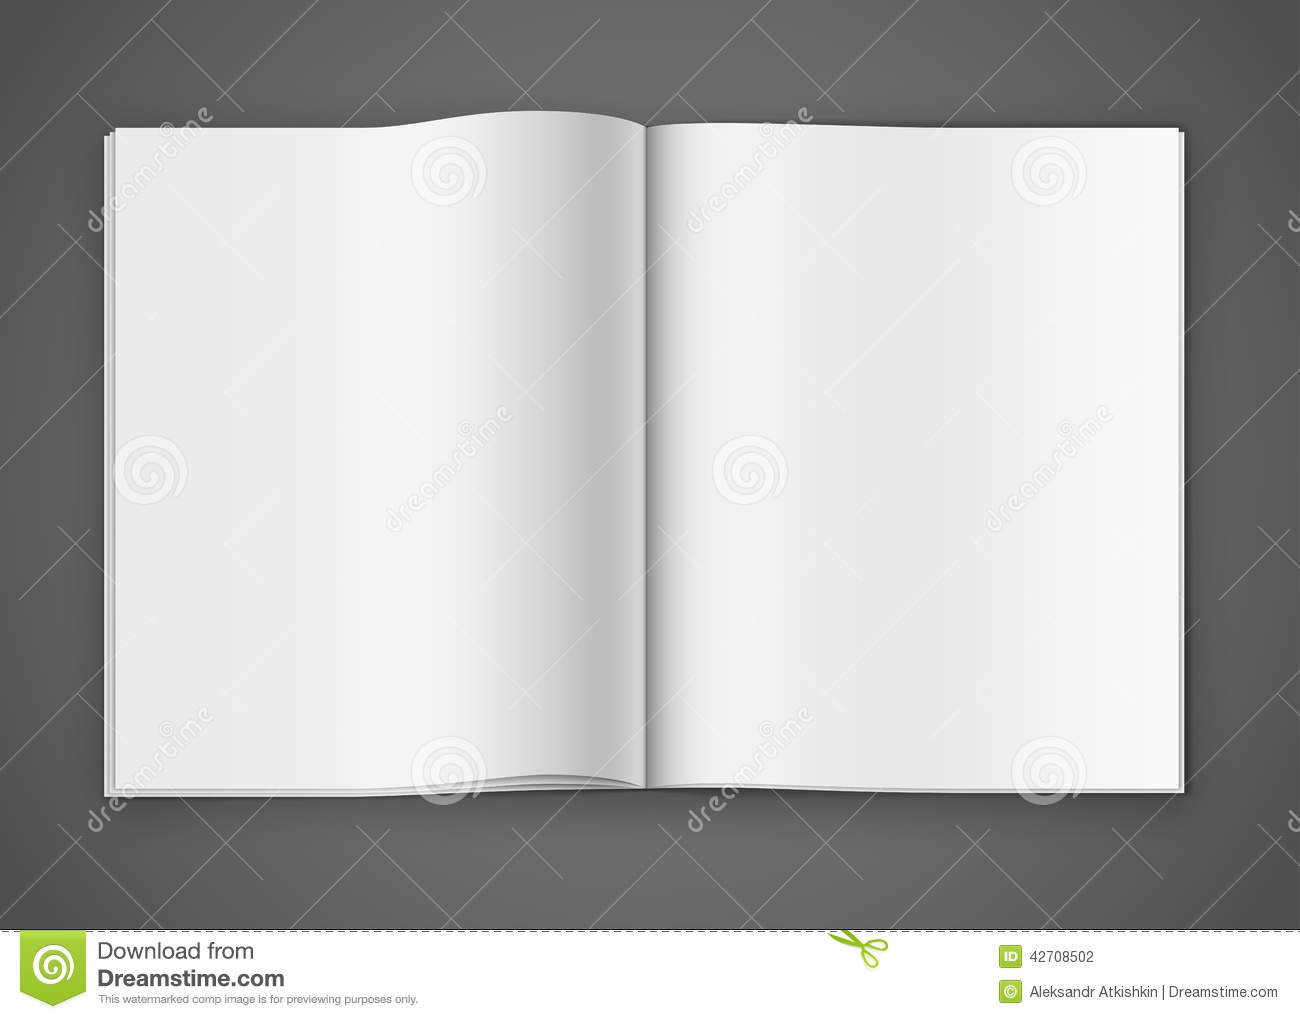 Notepad Template Stock Vector - Image: 42708502